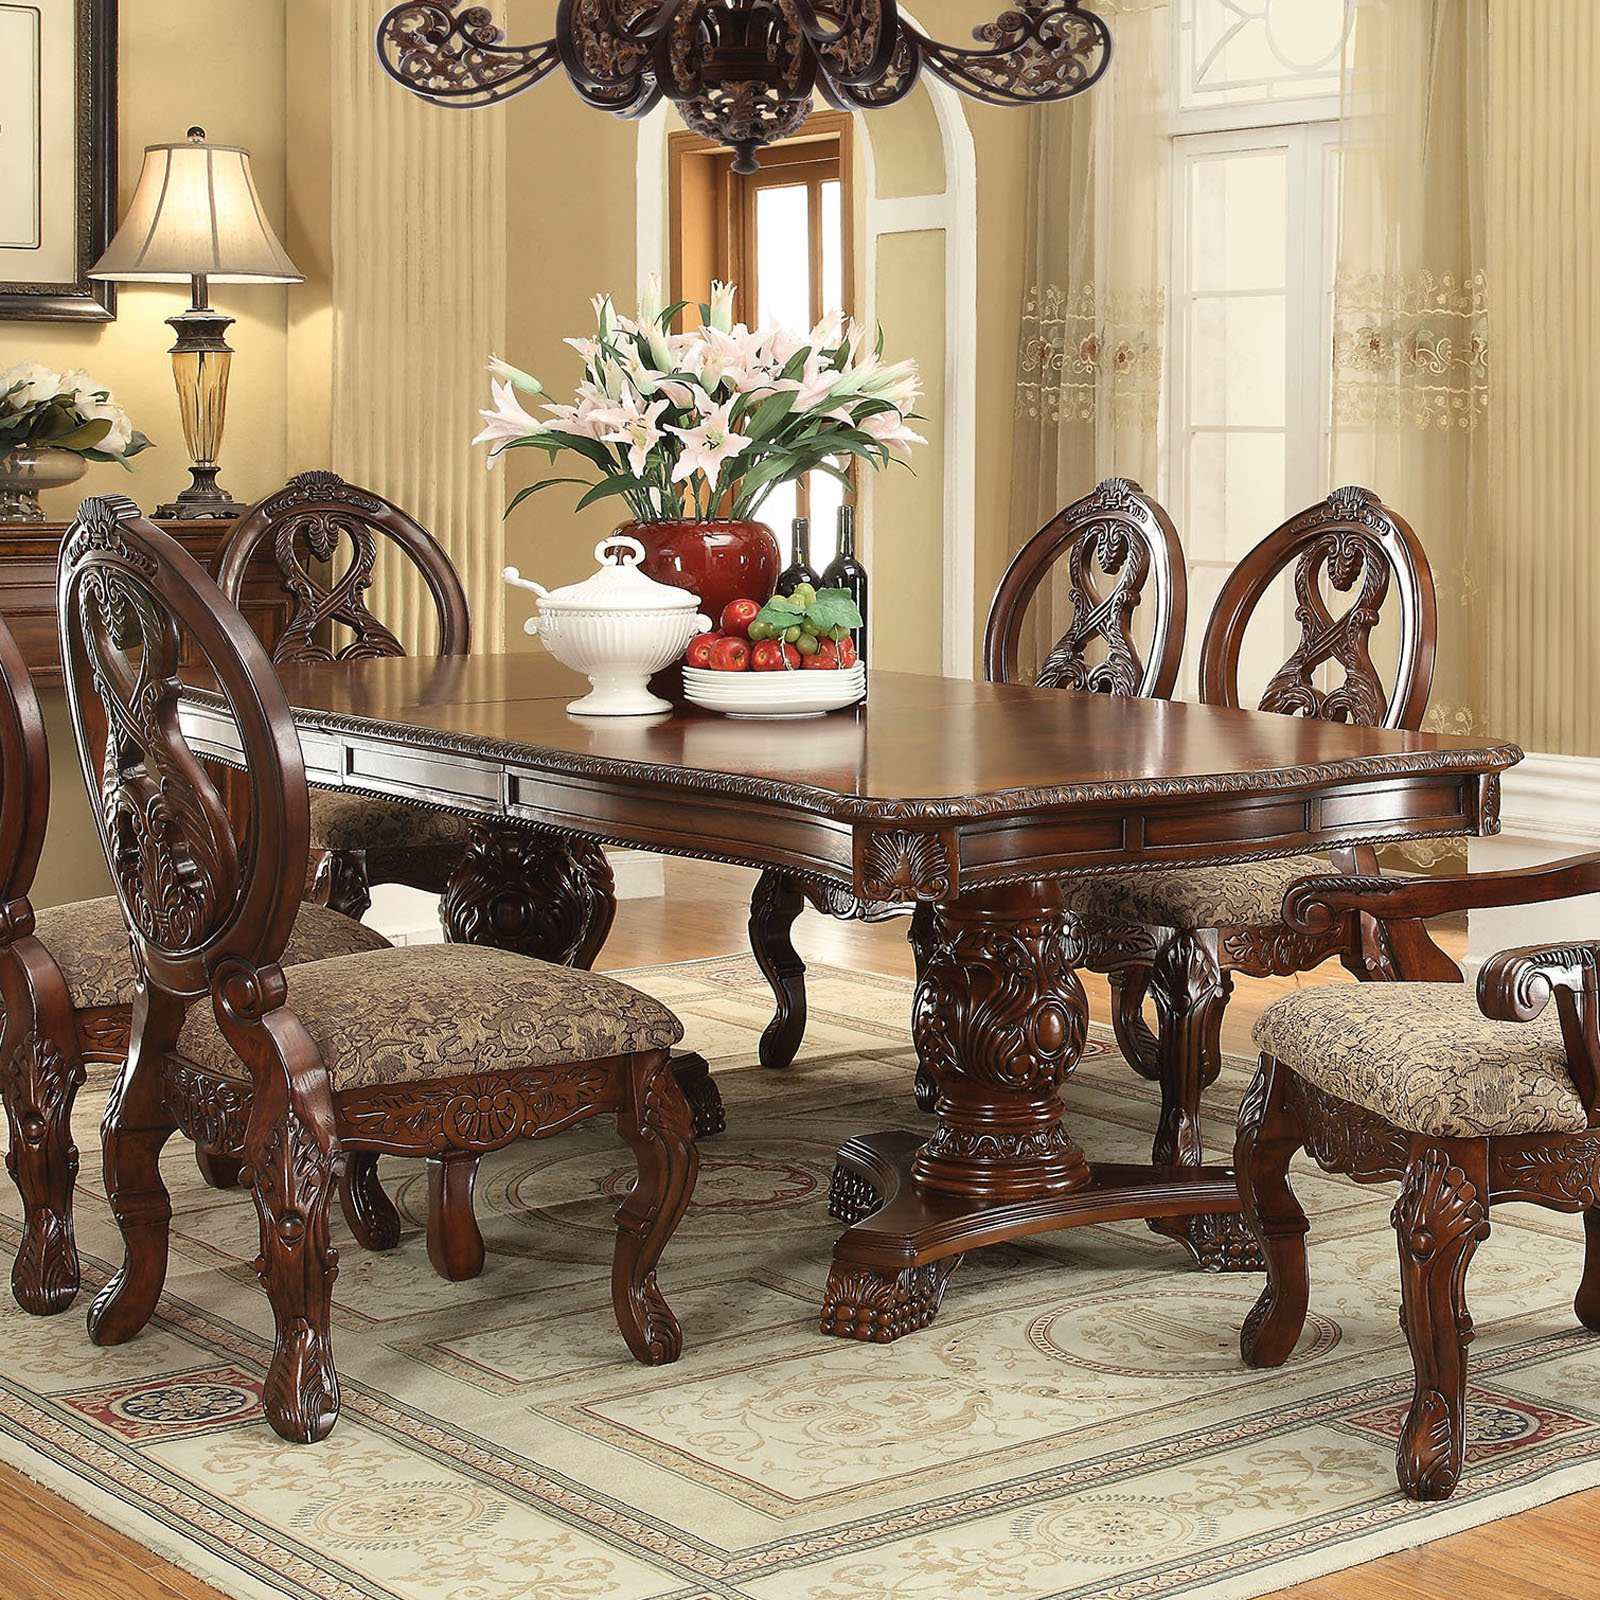 Acme Furniture Rovledo Rectangular Double Pedestal Dining Table by